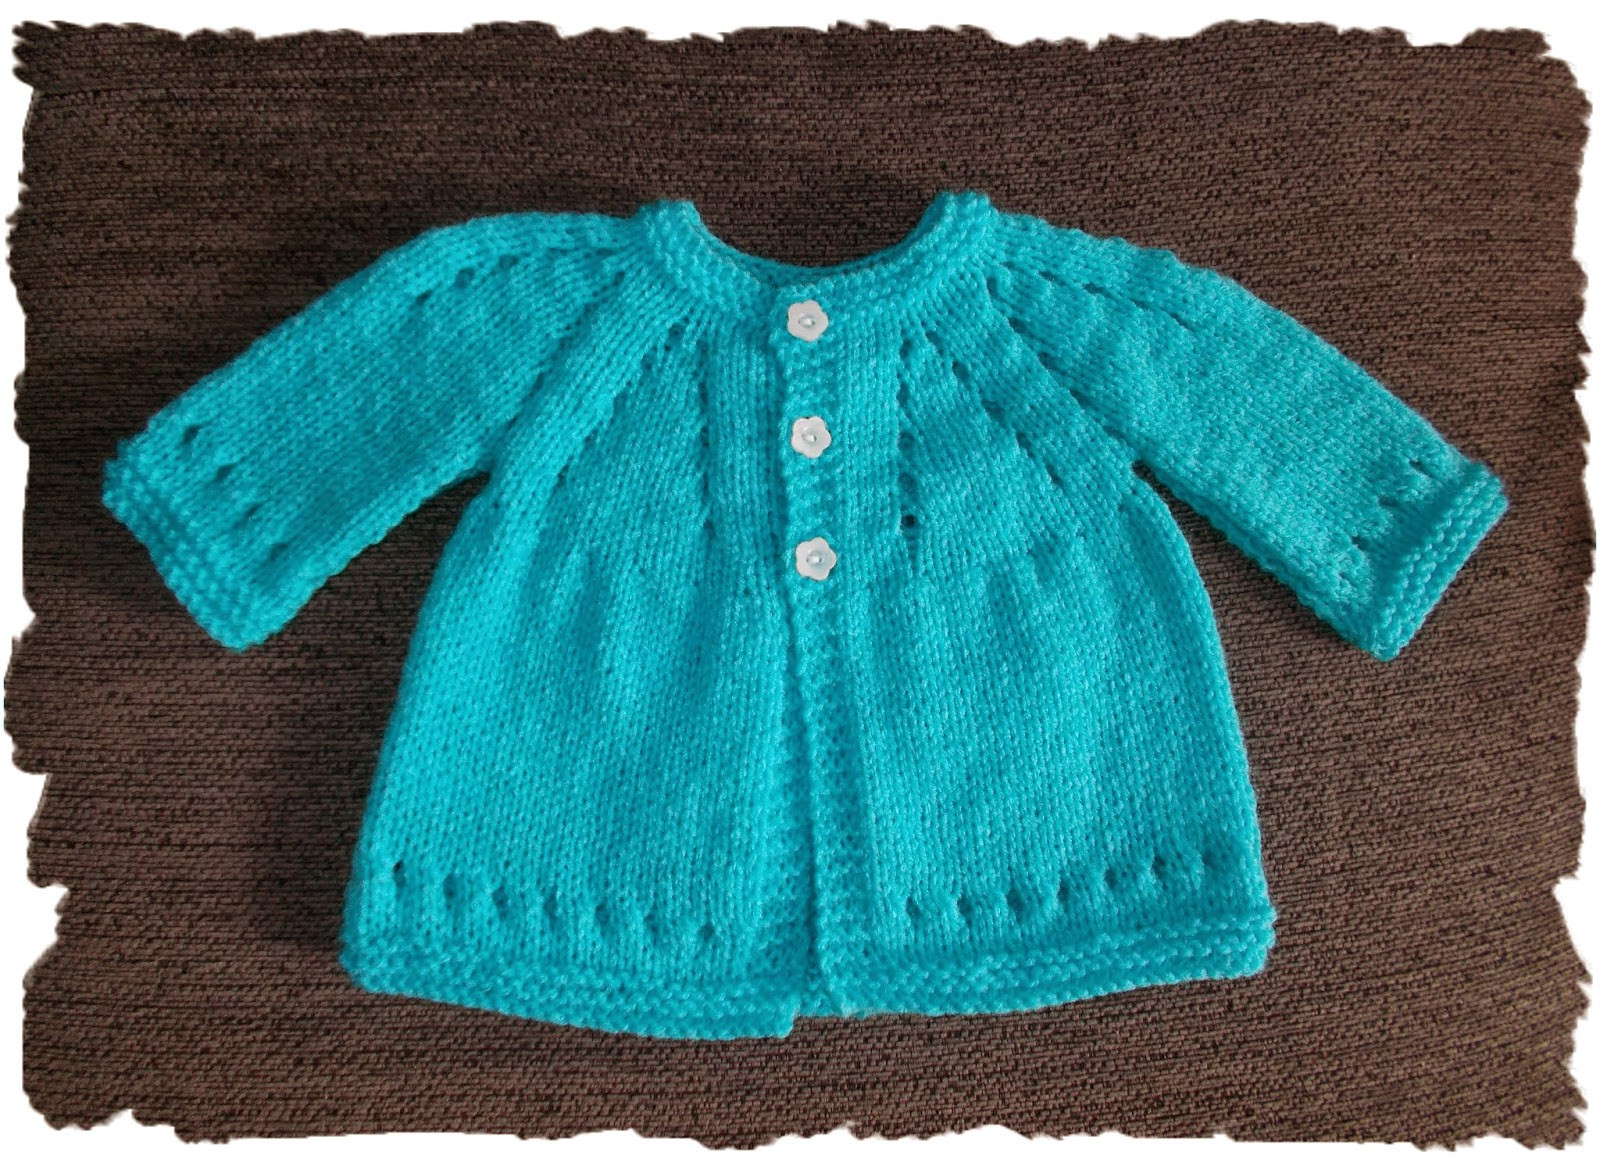 Free Baby Knitting Patterns Beautiful Free Knitting Patterns for Babies Sweaters Of Awesome 43 Images Free Baby Knitting Patterns